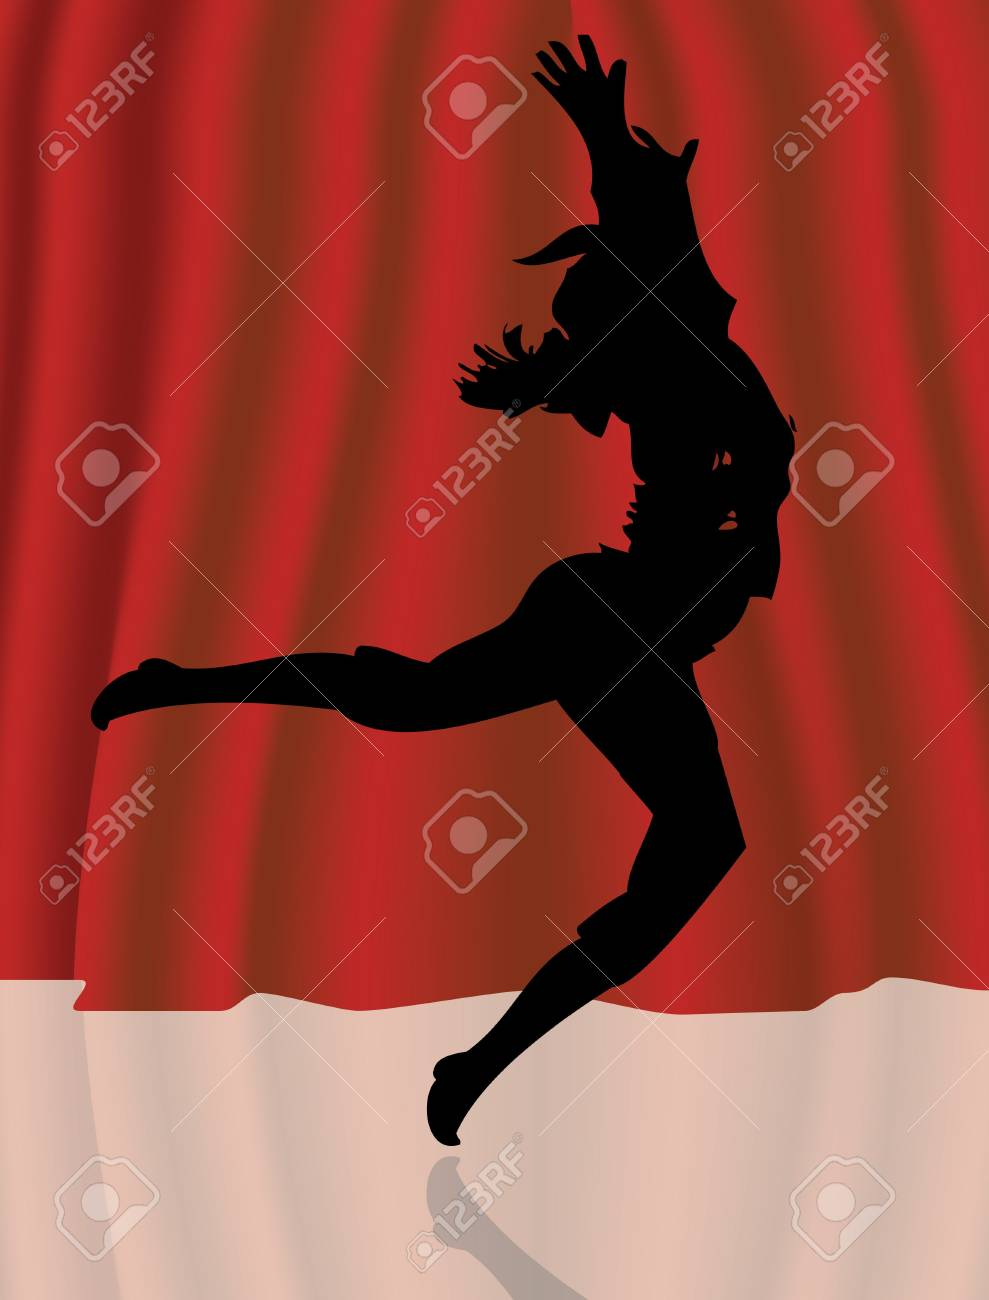 curtain Stock Photo - 3080777